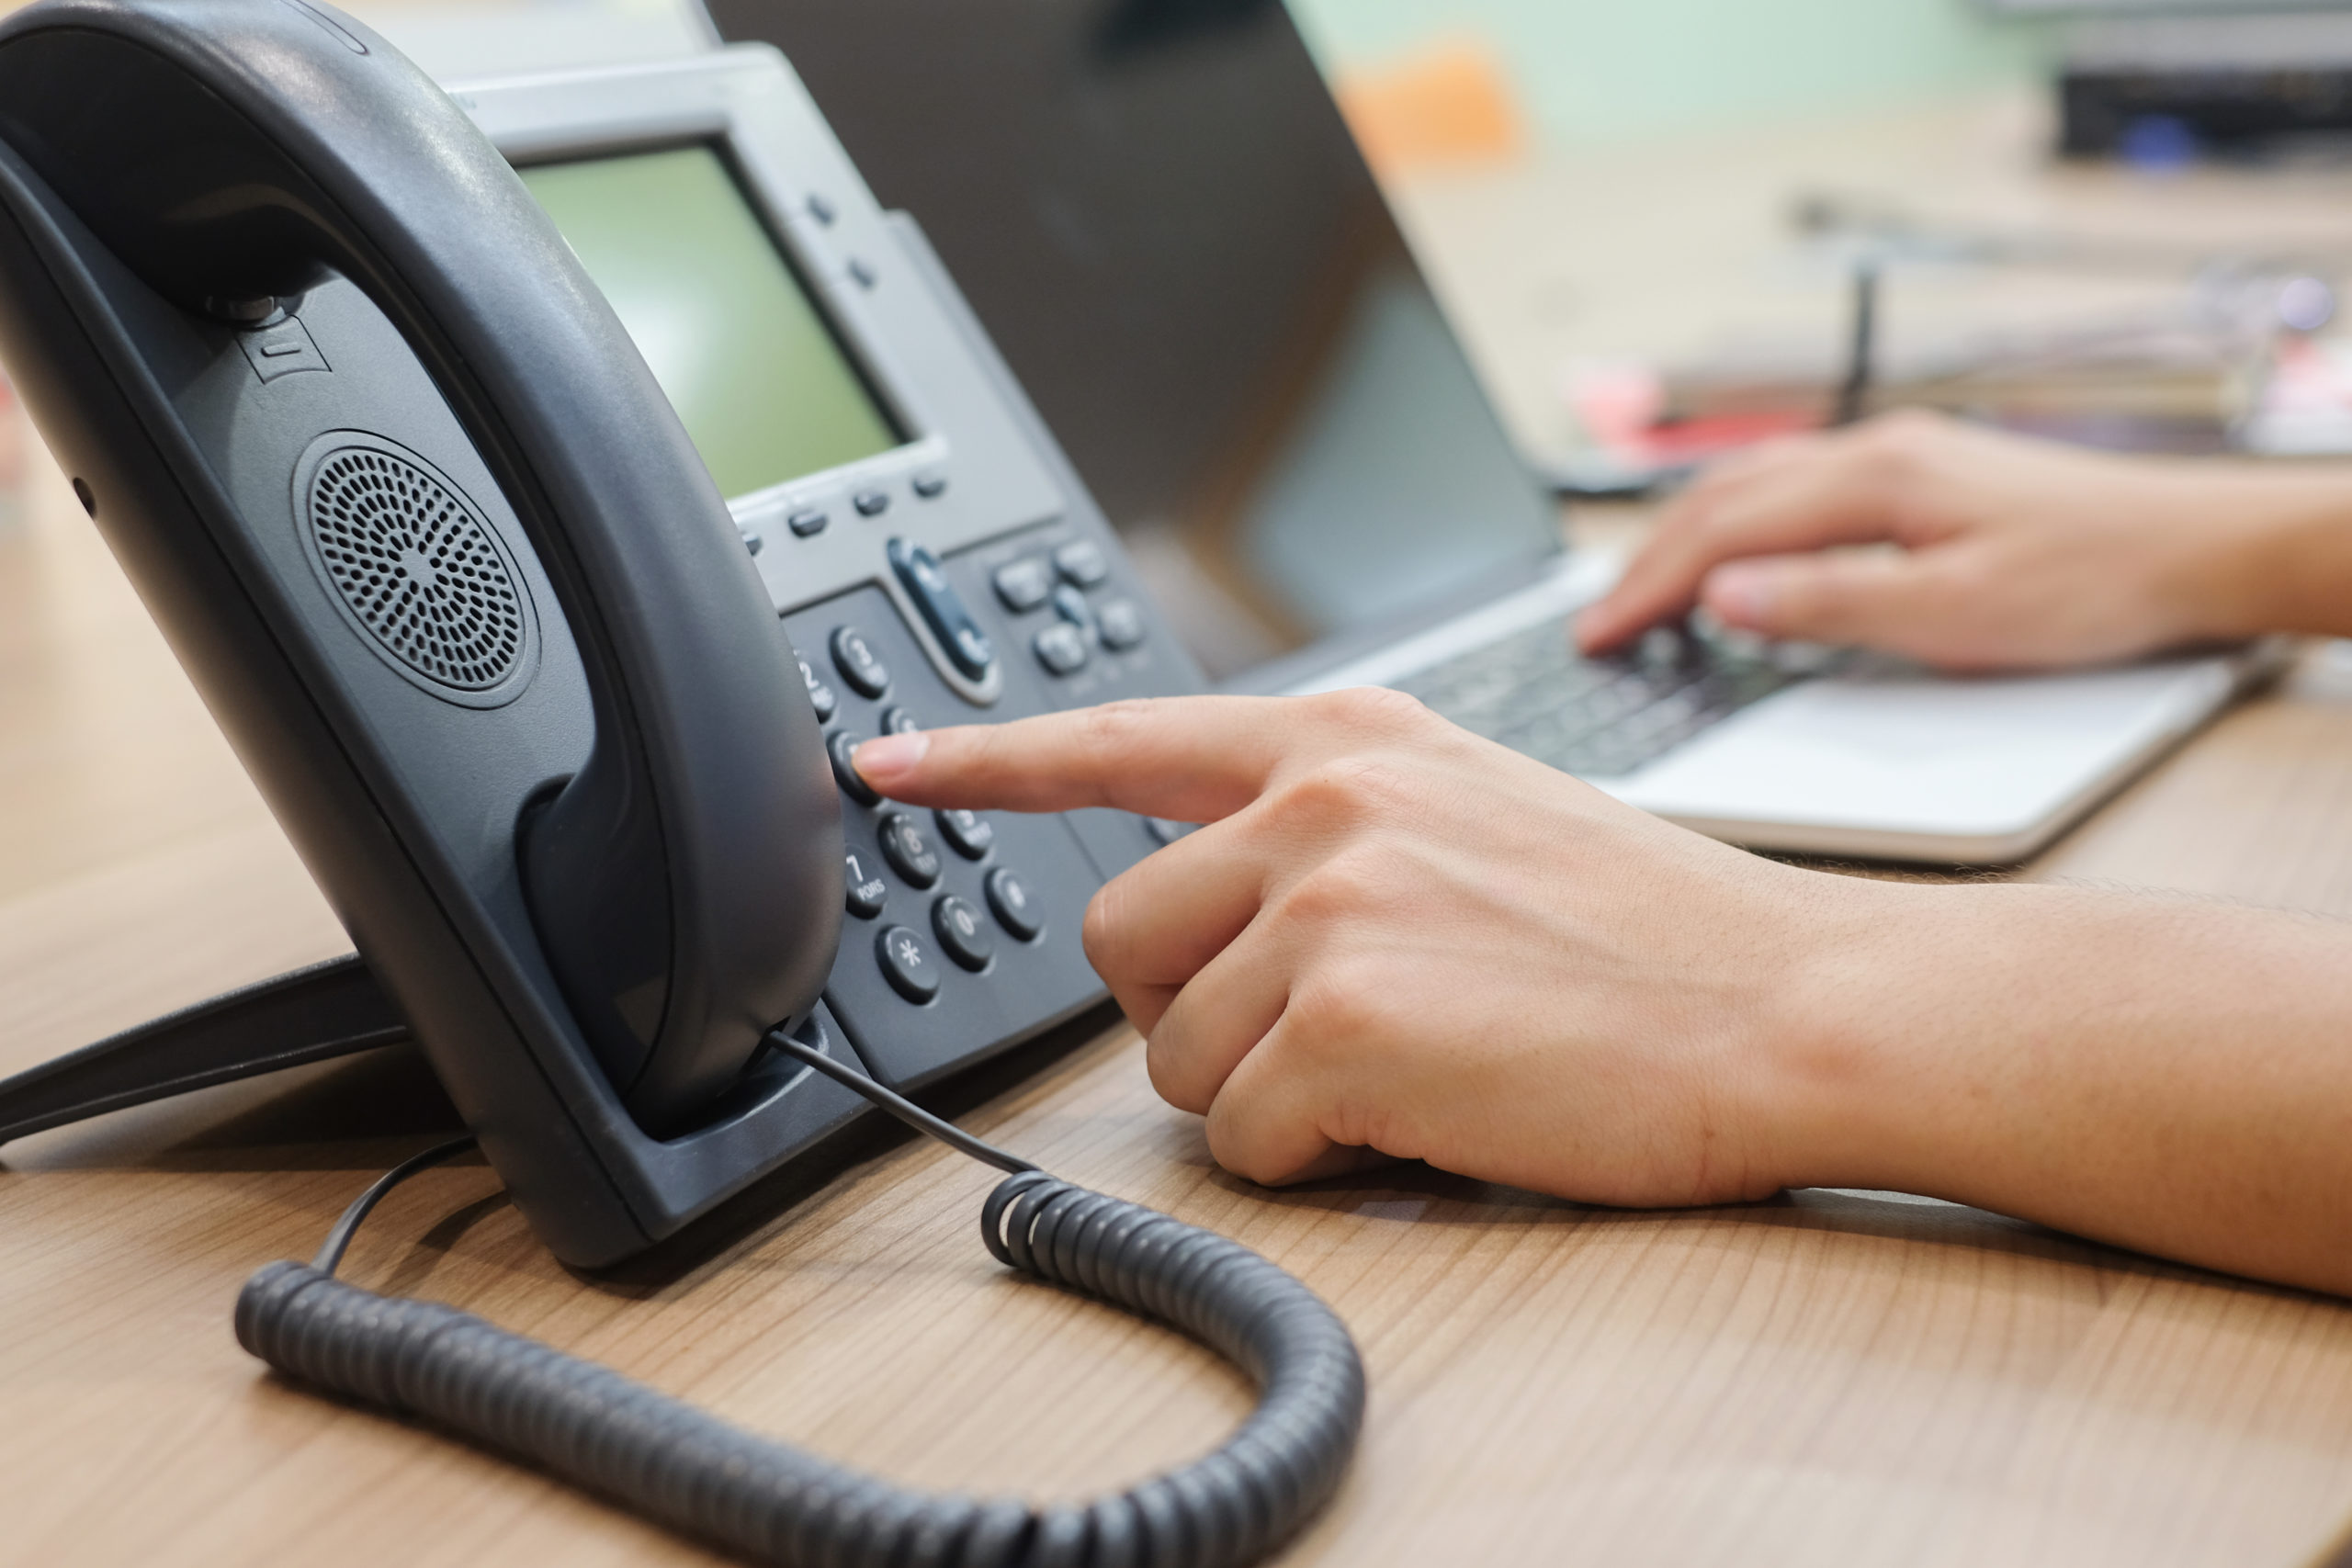 Close Up of Hands Dialing VoIP Phone